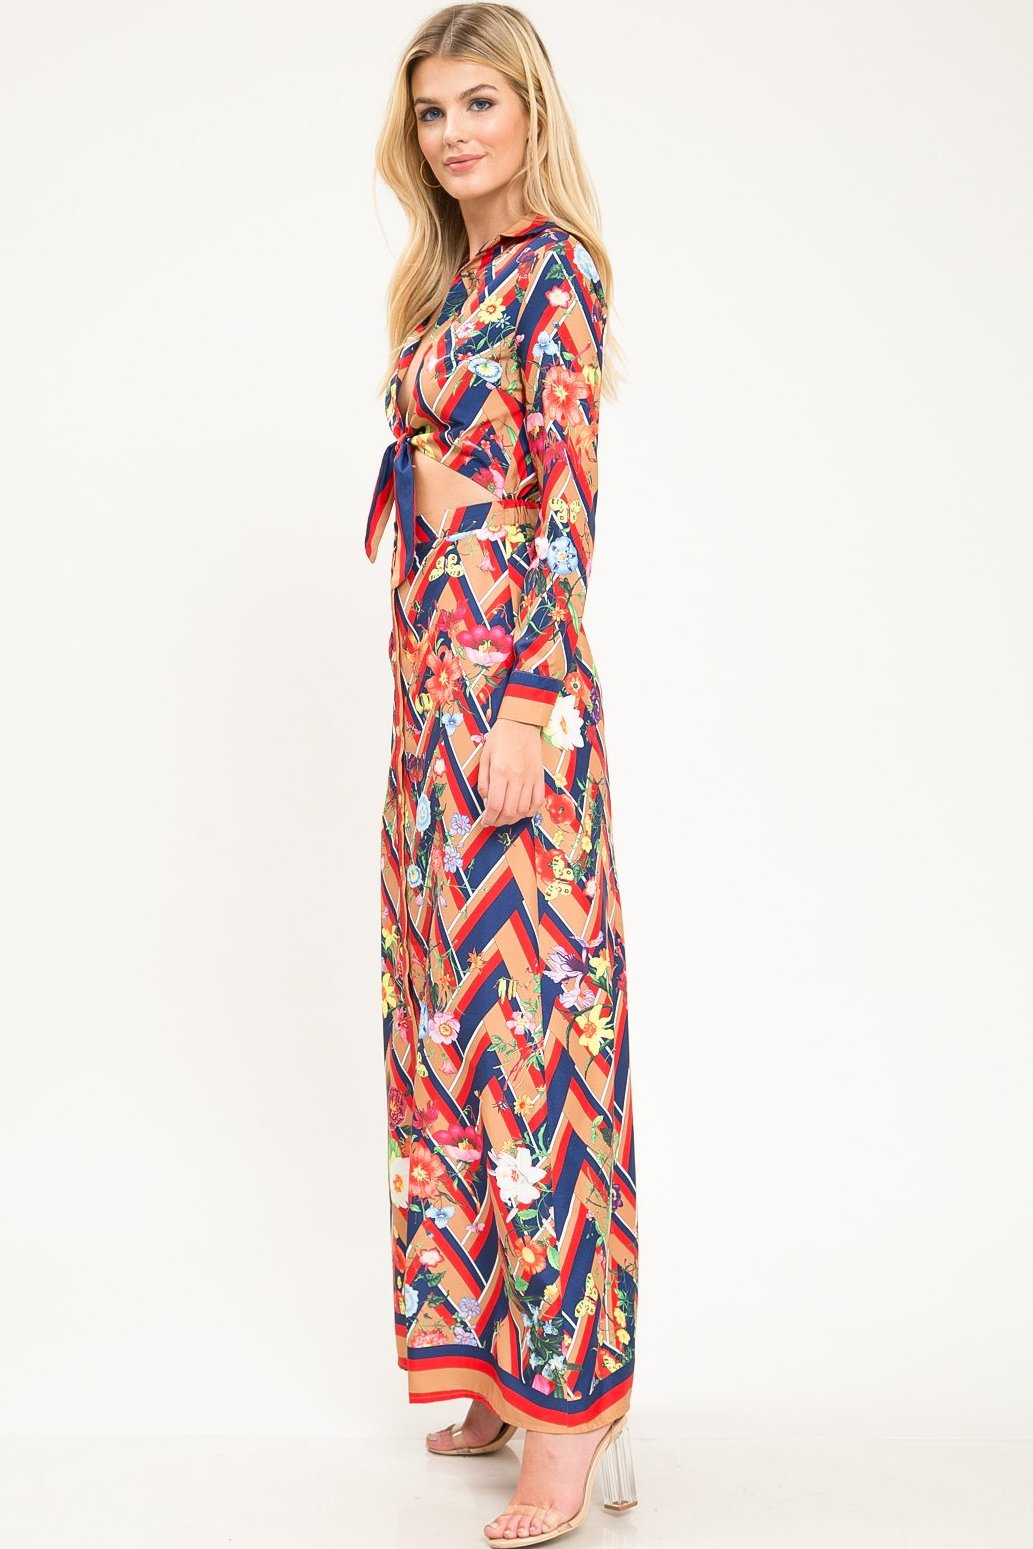 Dolly Cutout Floral Maxi Dress - Geegeebae